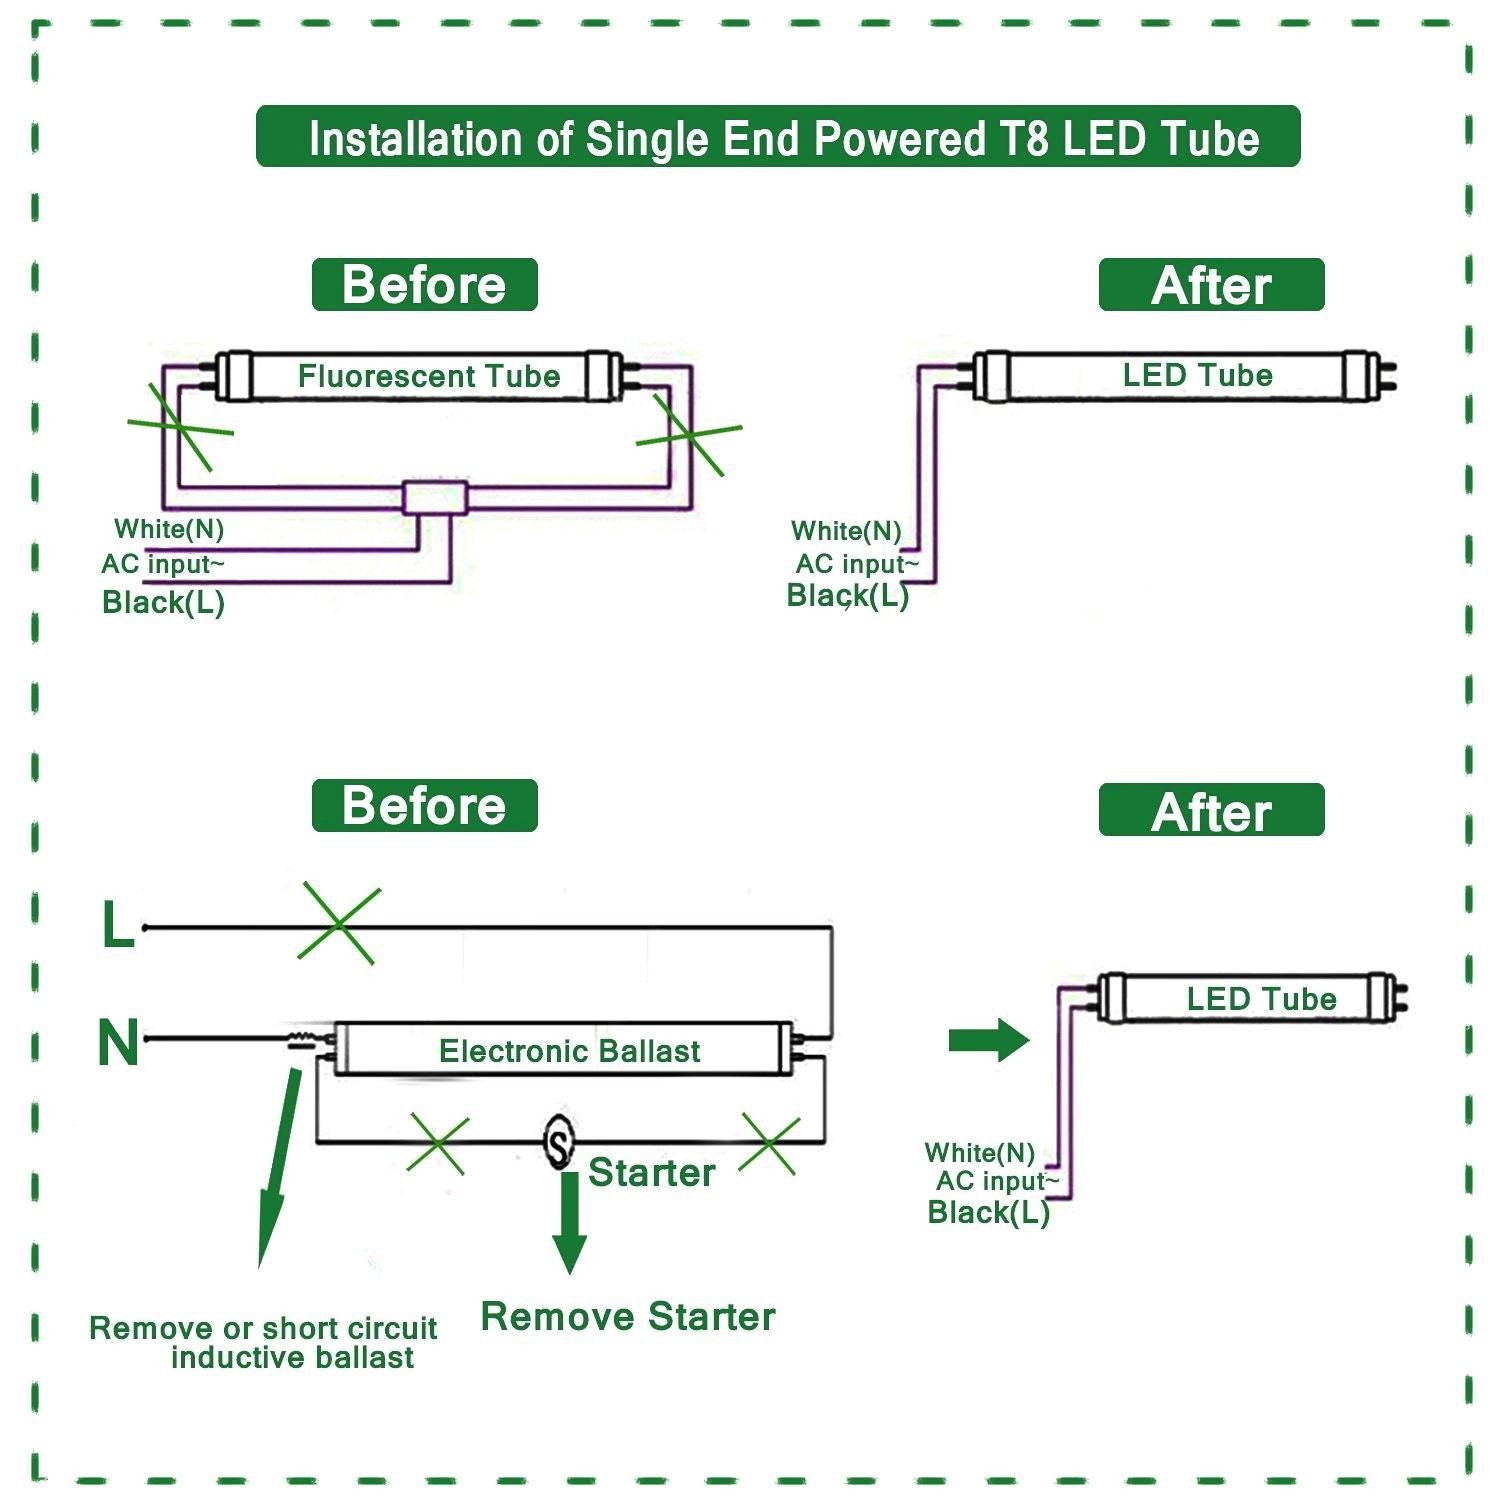 led fluorescent tube replacement wiring diagram awesome wiring Fluorescent Light Wiring Diagram led t8 wiring diagram t8 t12 led tubes led pods dmx